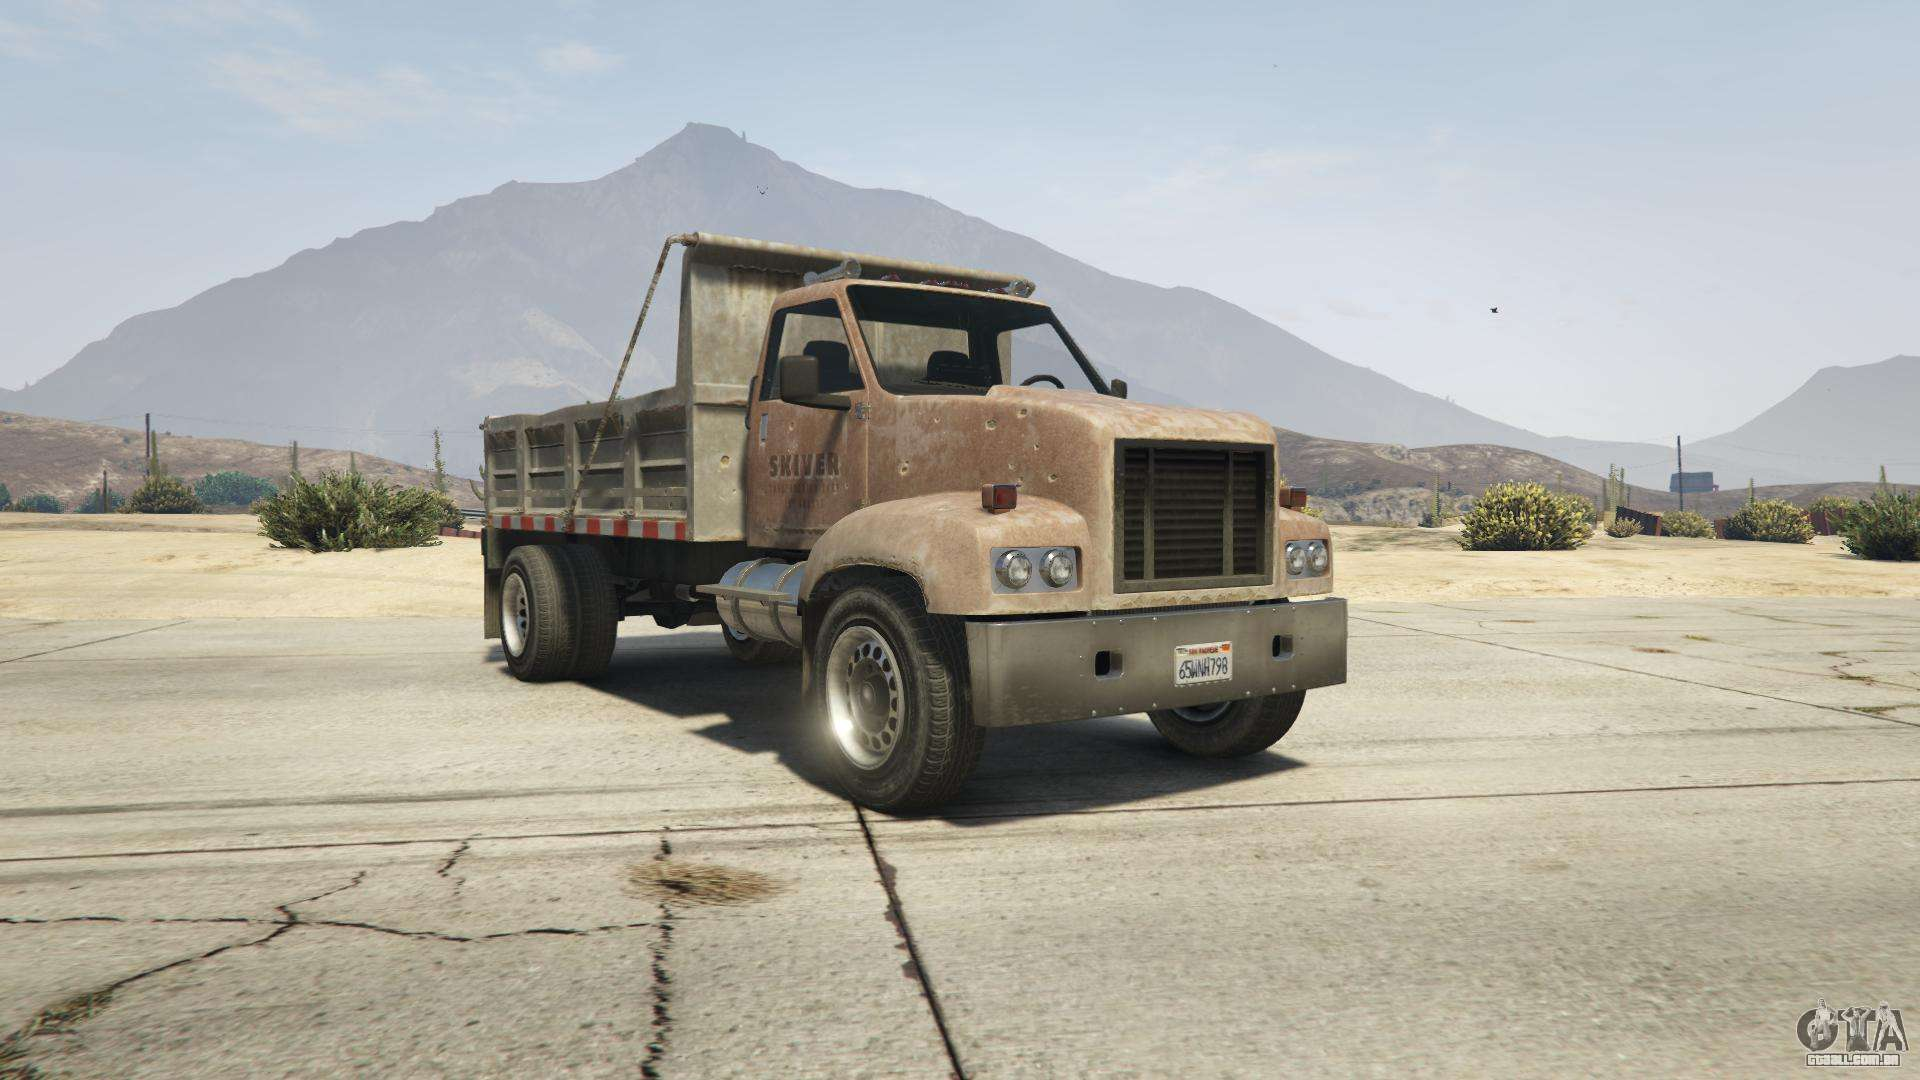 GTA 5 Brute Tipper-1-st-gen. - vista frontal